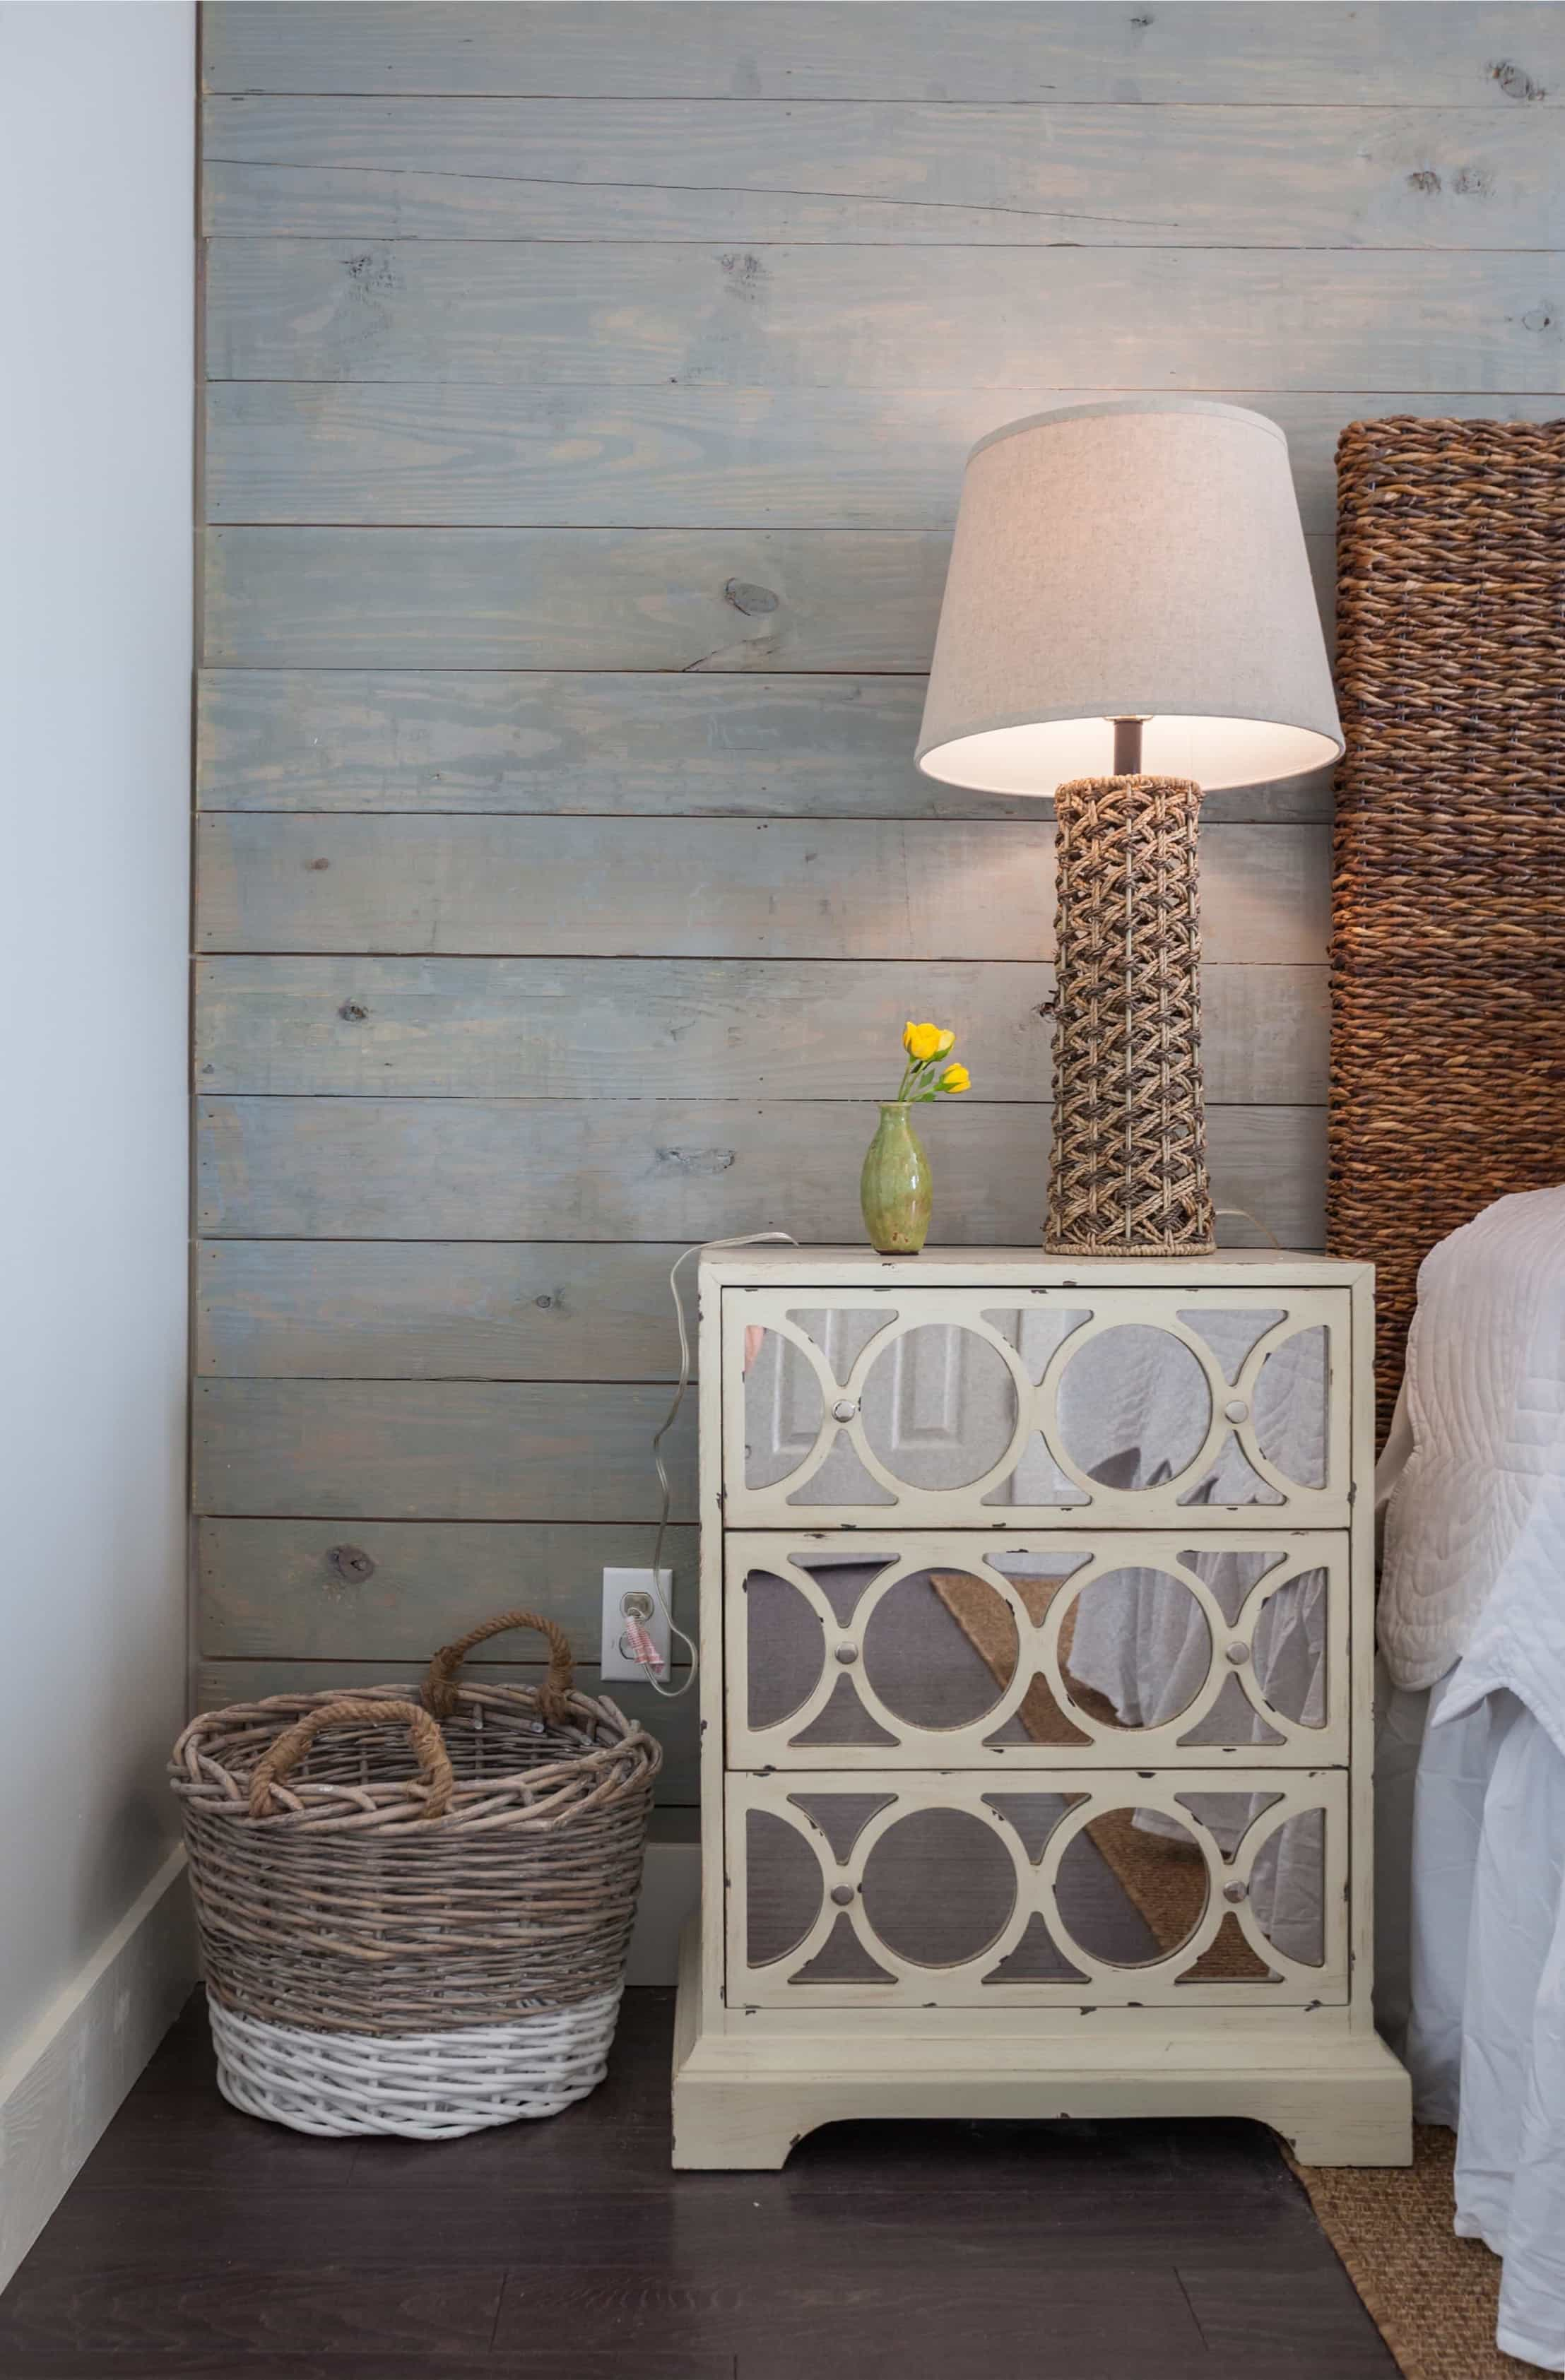 Featured Image of Mirrored Night Stand And Twine Wrapped Lamp